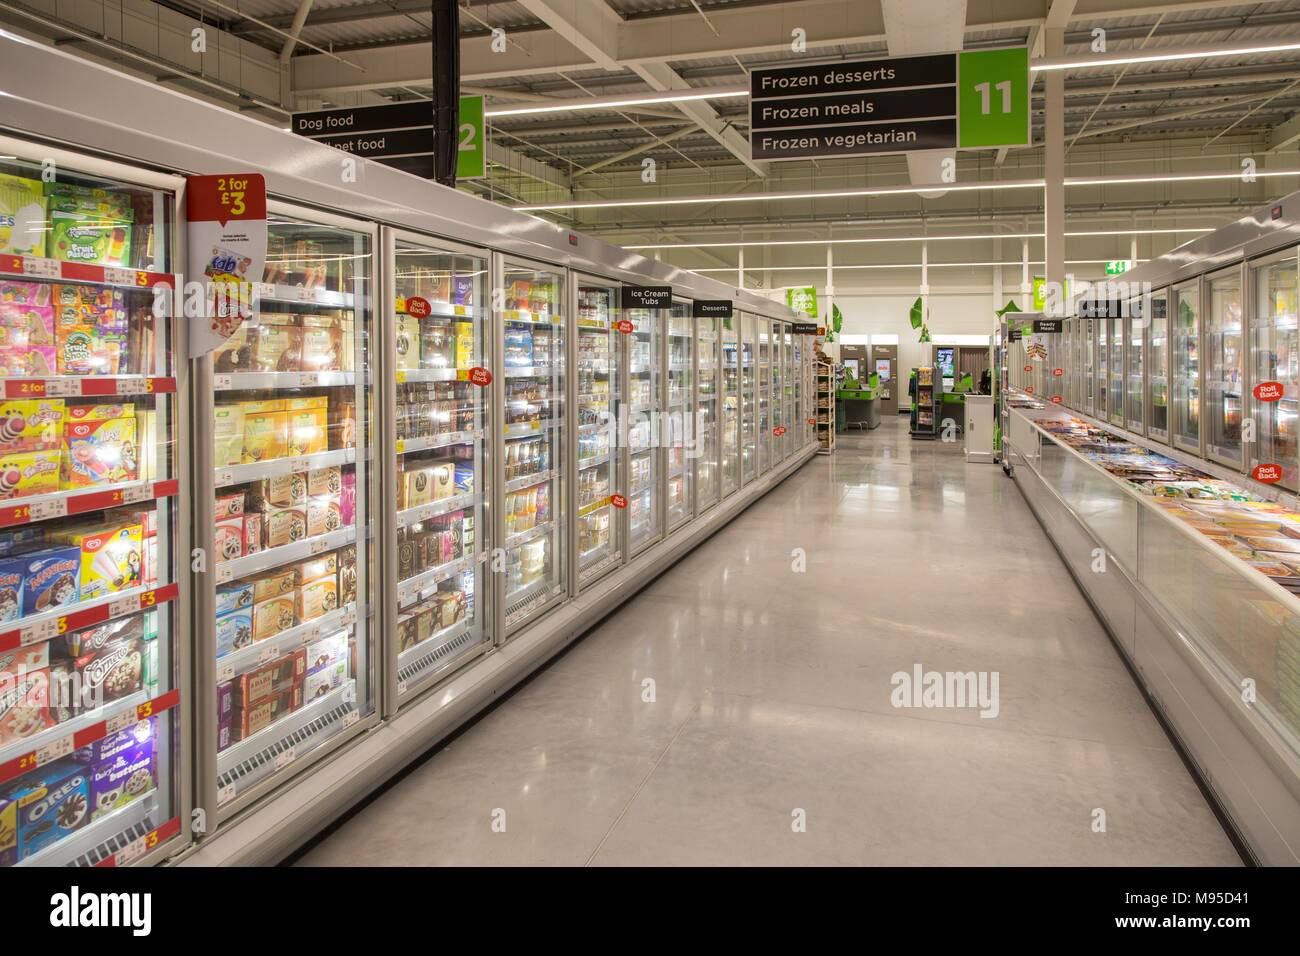 Frozen deserts and meals,  full freezer cabinets in an Asda supermarket. - Stock Image